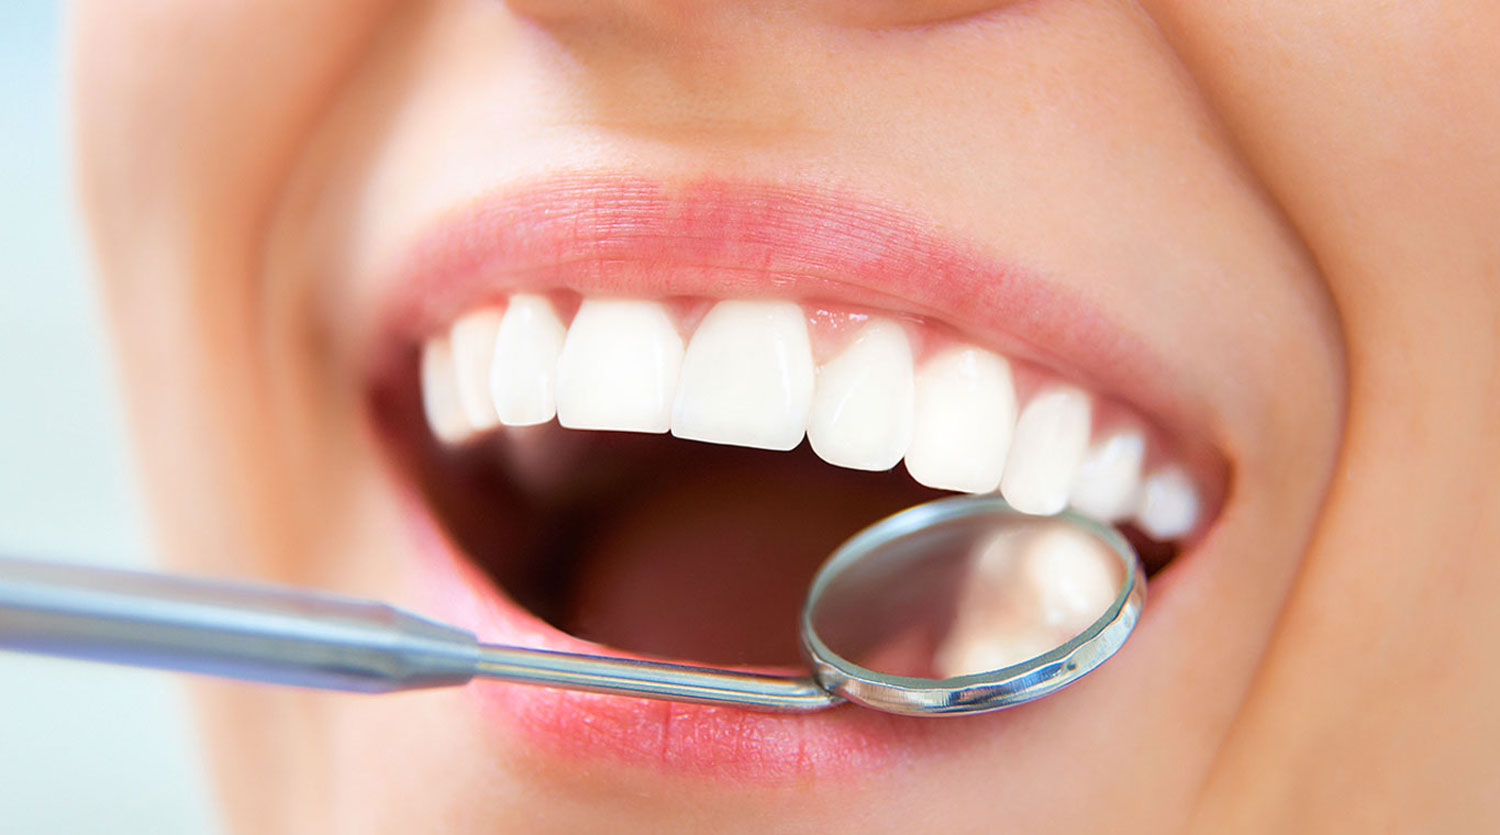 Oral Cancer Screening and Biopsy